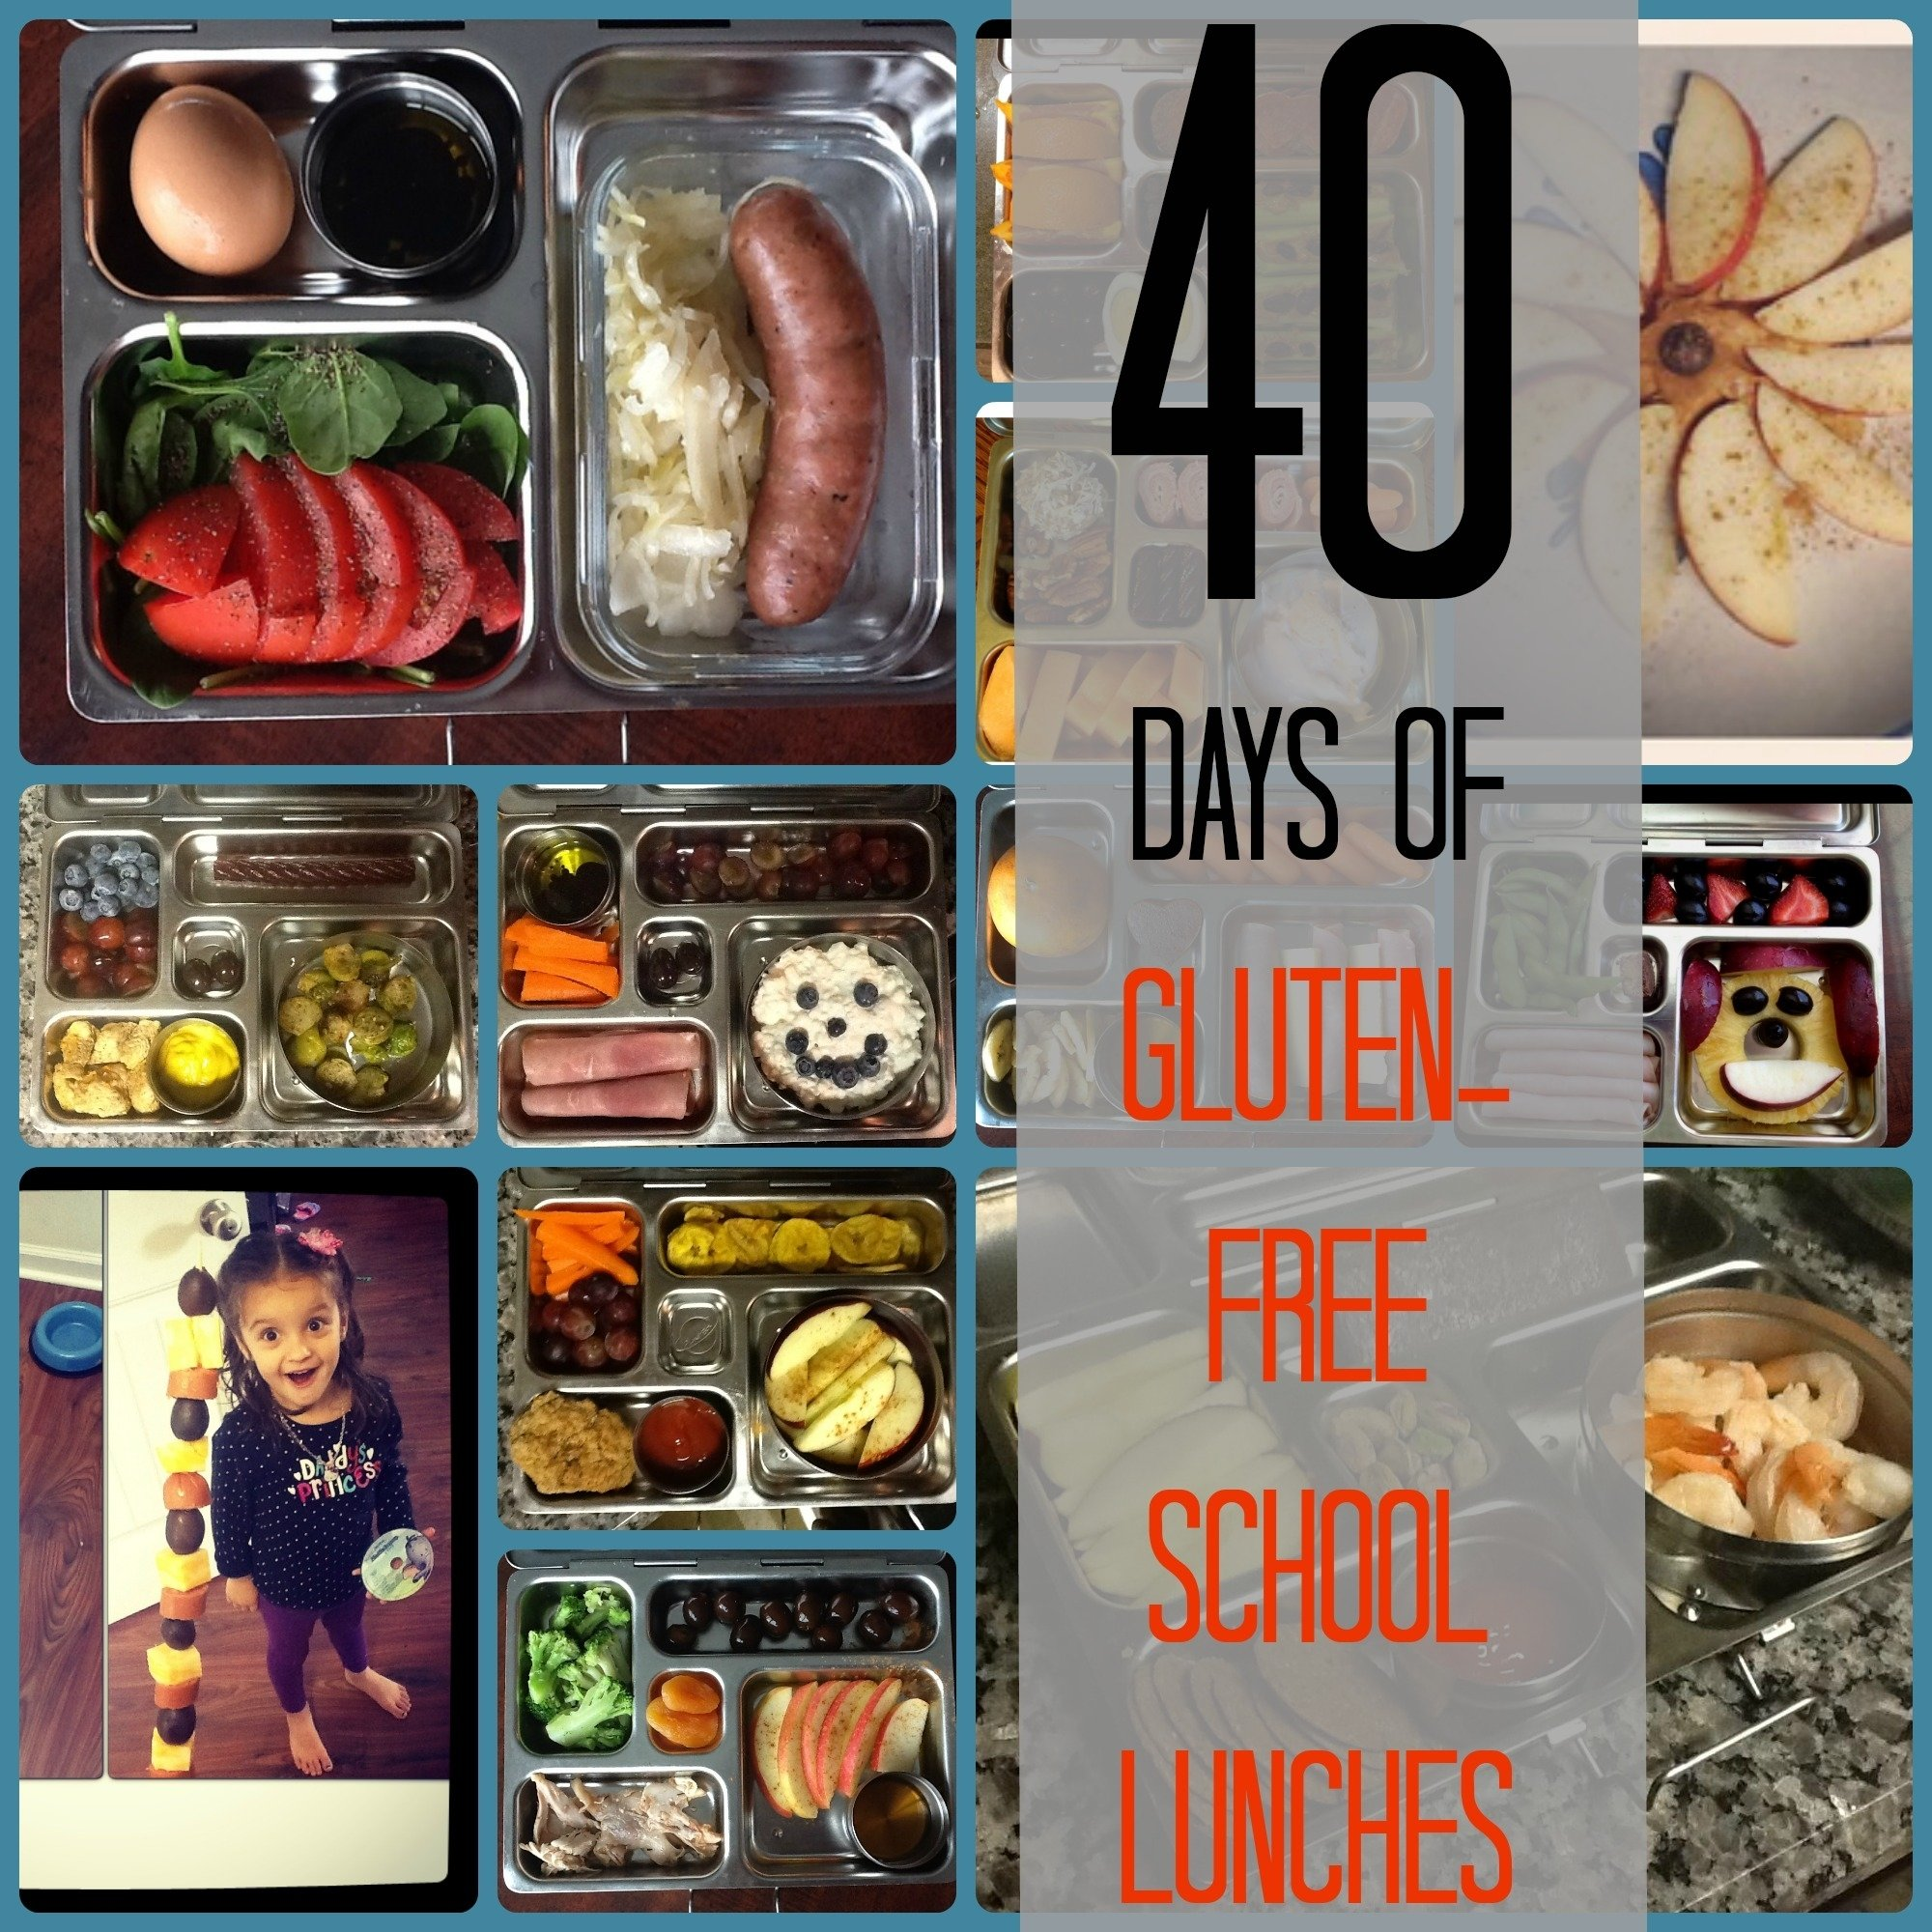 10 Stylish Gluten Free School Lunch Ideas 40 days of gluten free school lunches the paleo mama 1 2020